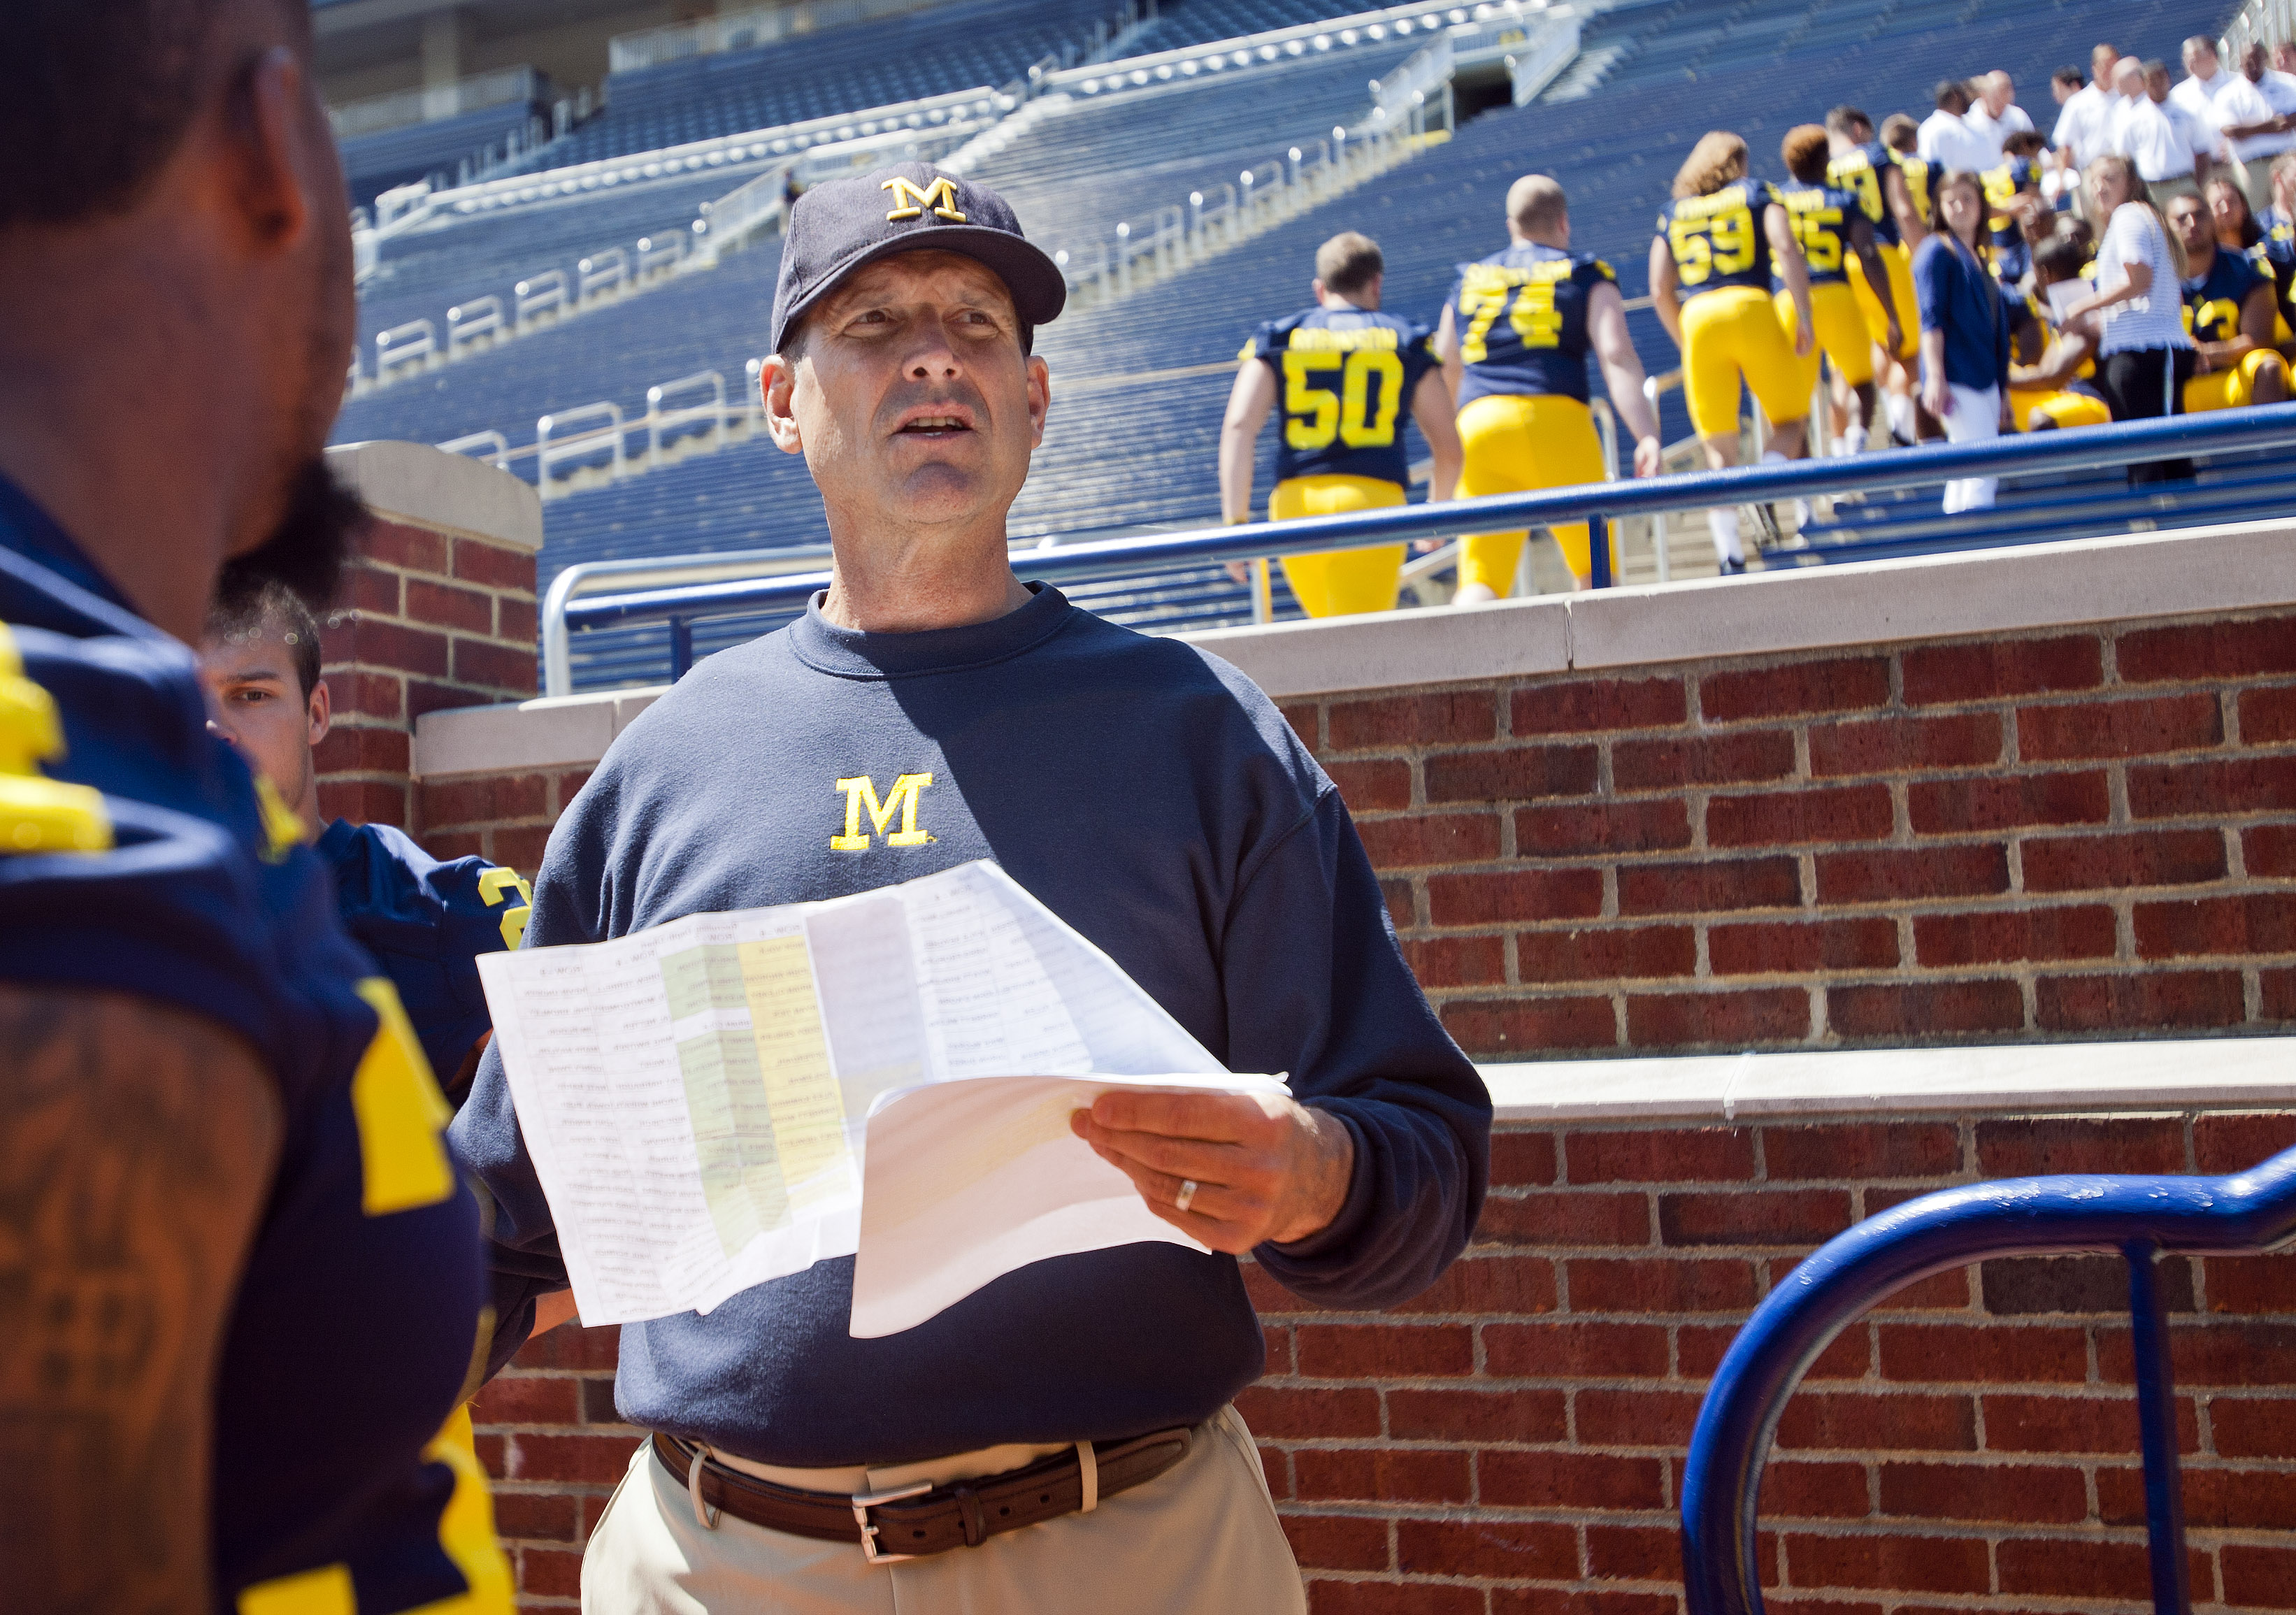 Michigan head coach Jim Harbaugh coordinates his players to lineup in the Michigan Stadium stands for a team photo, during the NCAA college football team's annual media day in Ann Arbor, Mich., Thursday, Aug. 6, 2015. (AP Photo/Tony Ding)